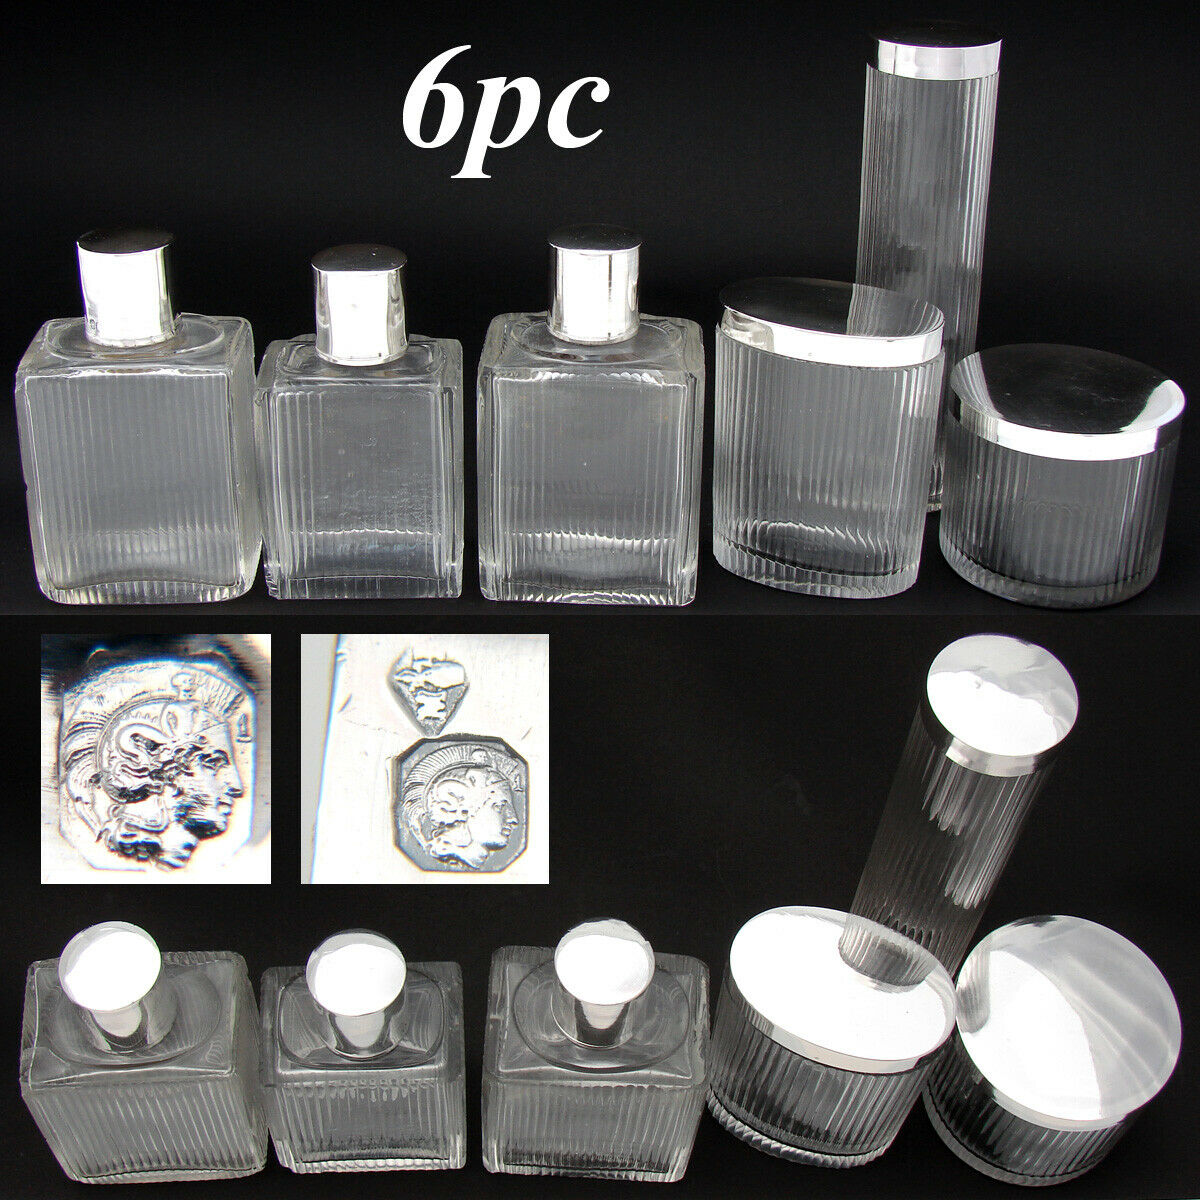 Vint. French Sterling Silver & Cut Glass 6pc Vanity Set, Jars & Perfume Bottles